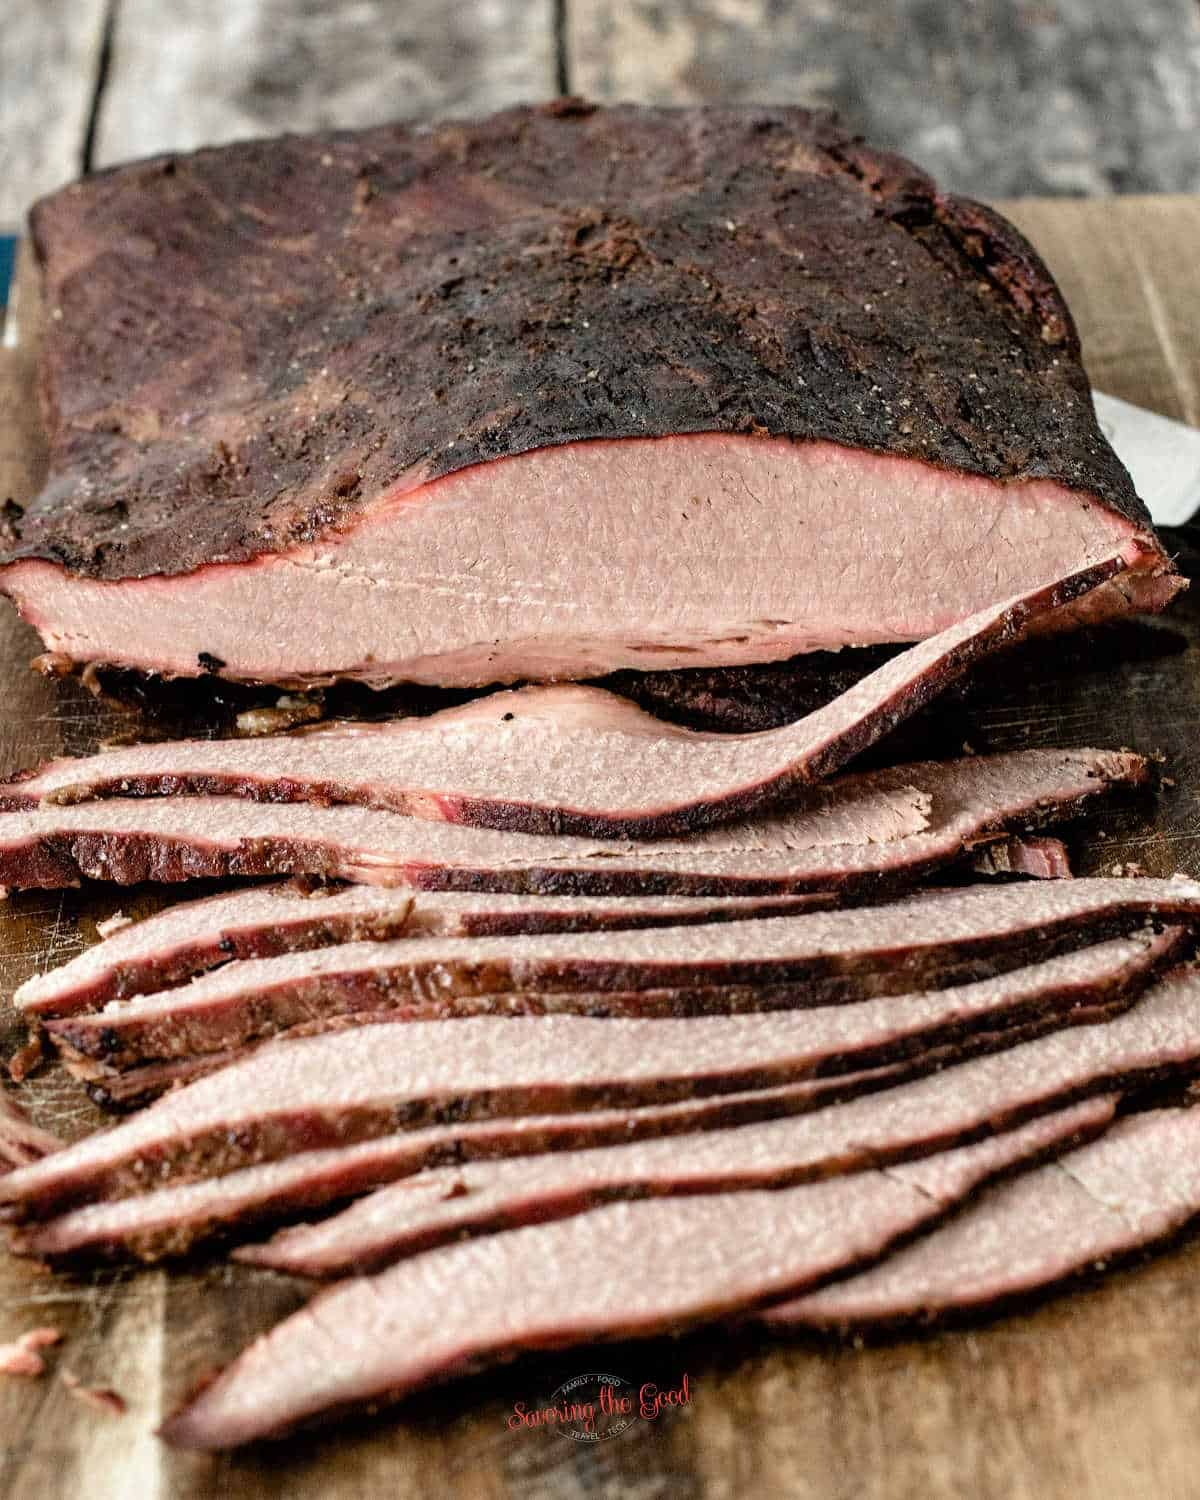 sliced Sous Vide Brisket showing crust and smoke ring